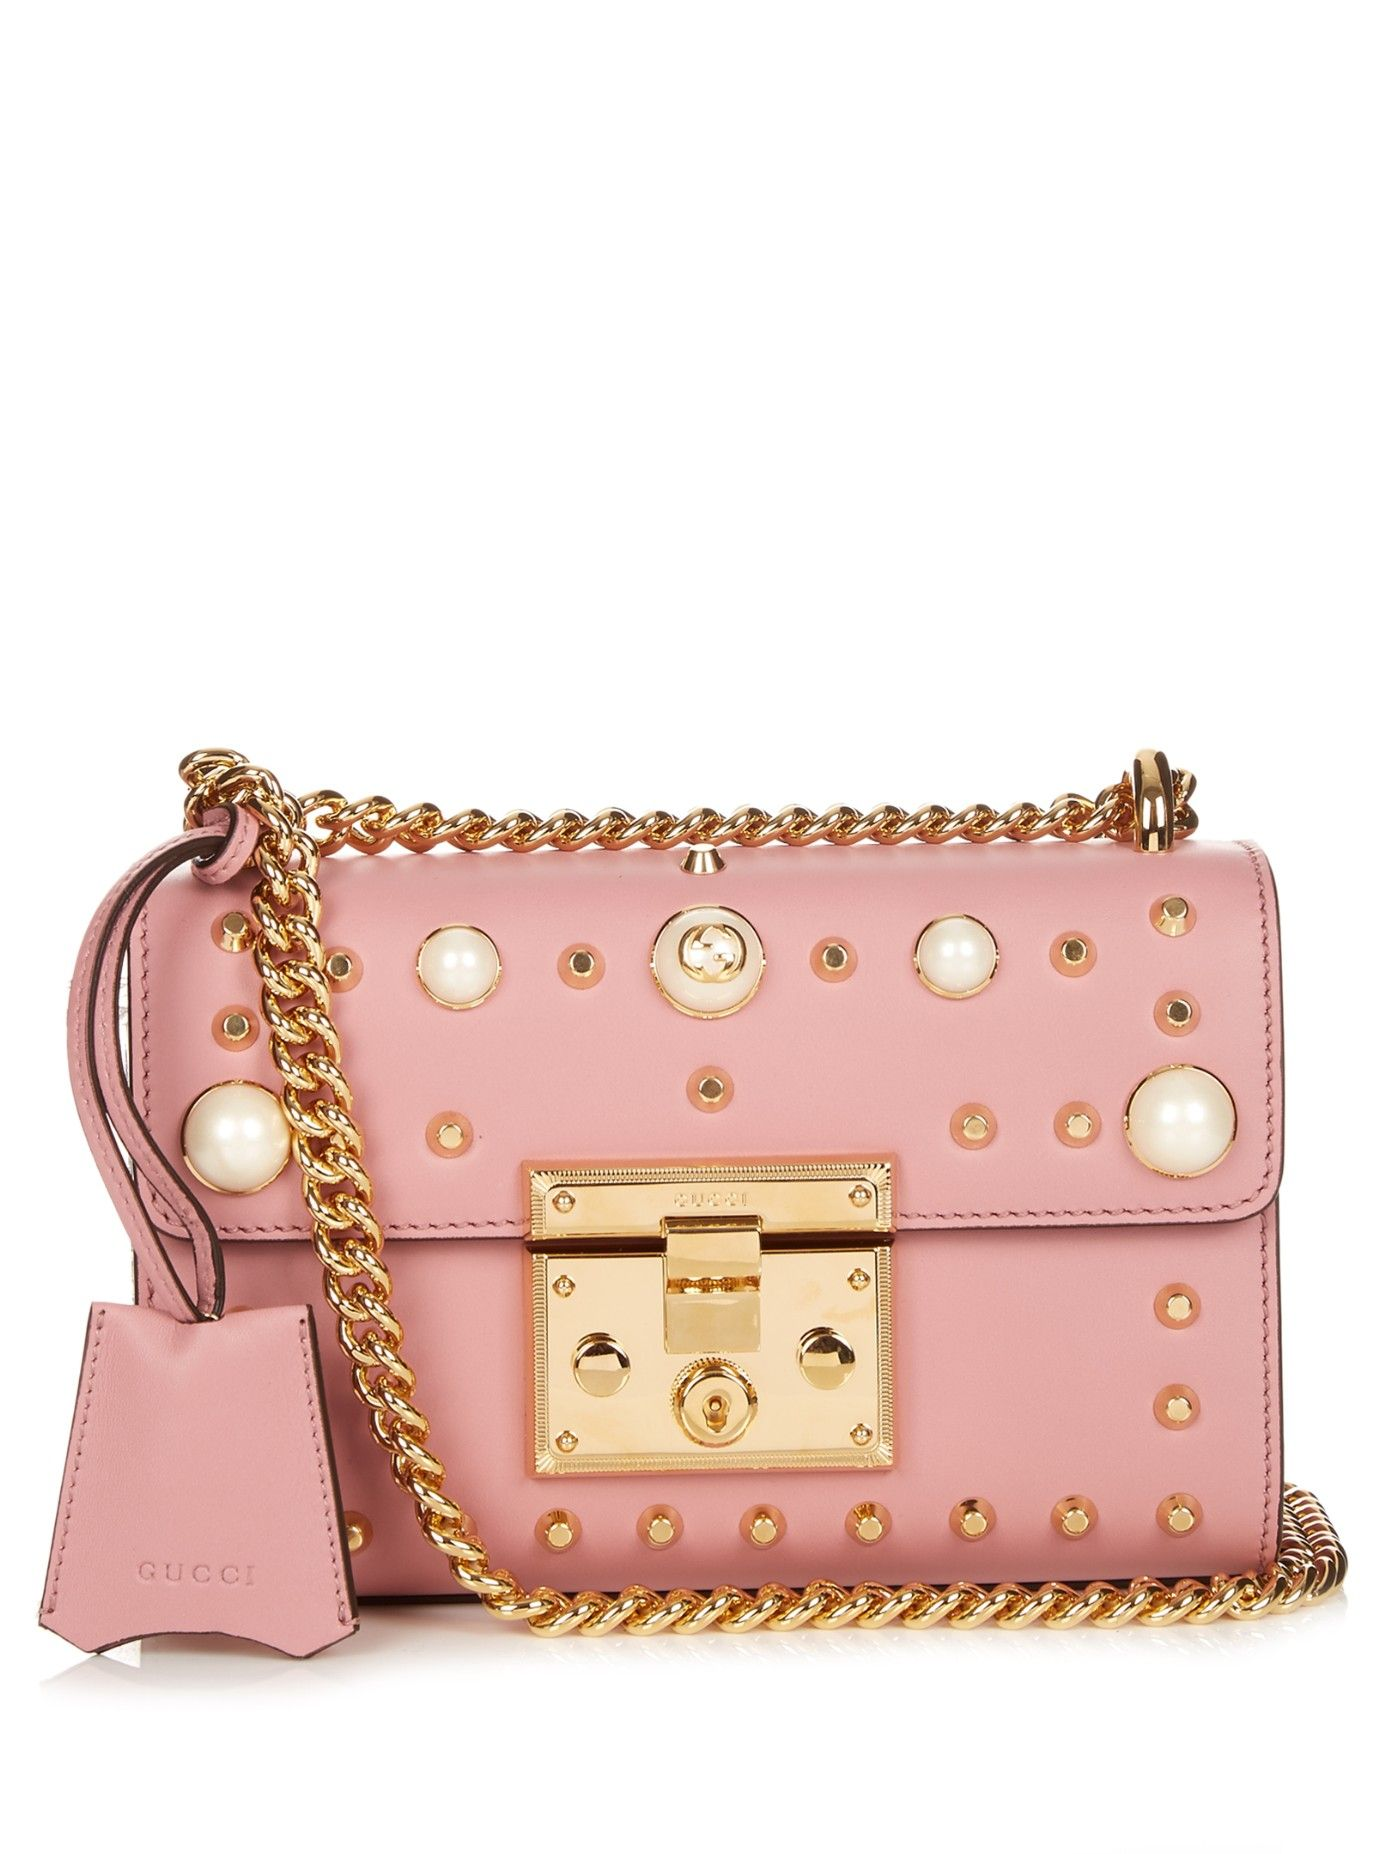 Gucci Padlock Small Embellished Leather Cross Body Bag